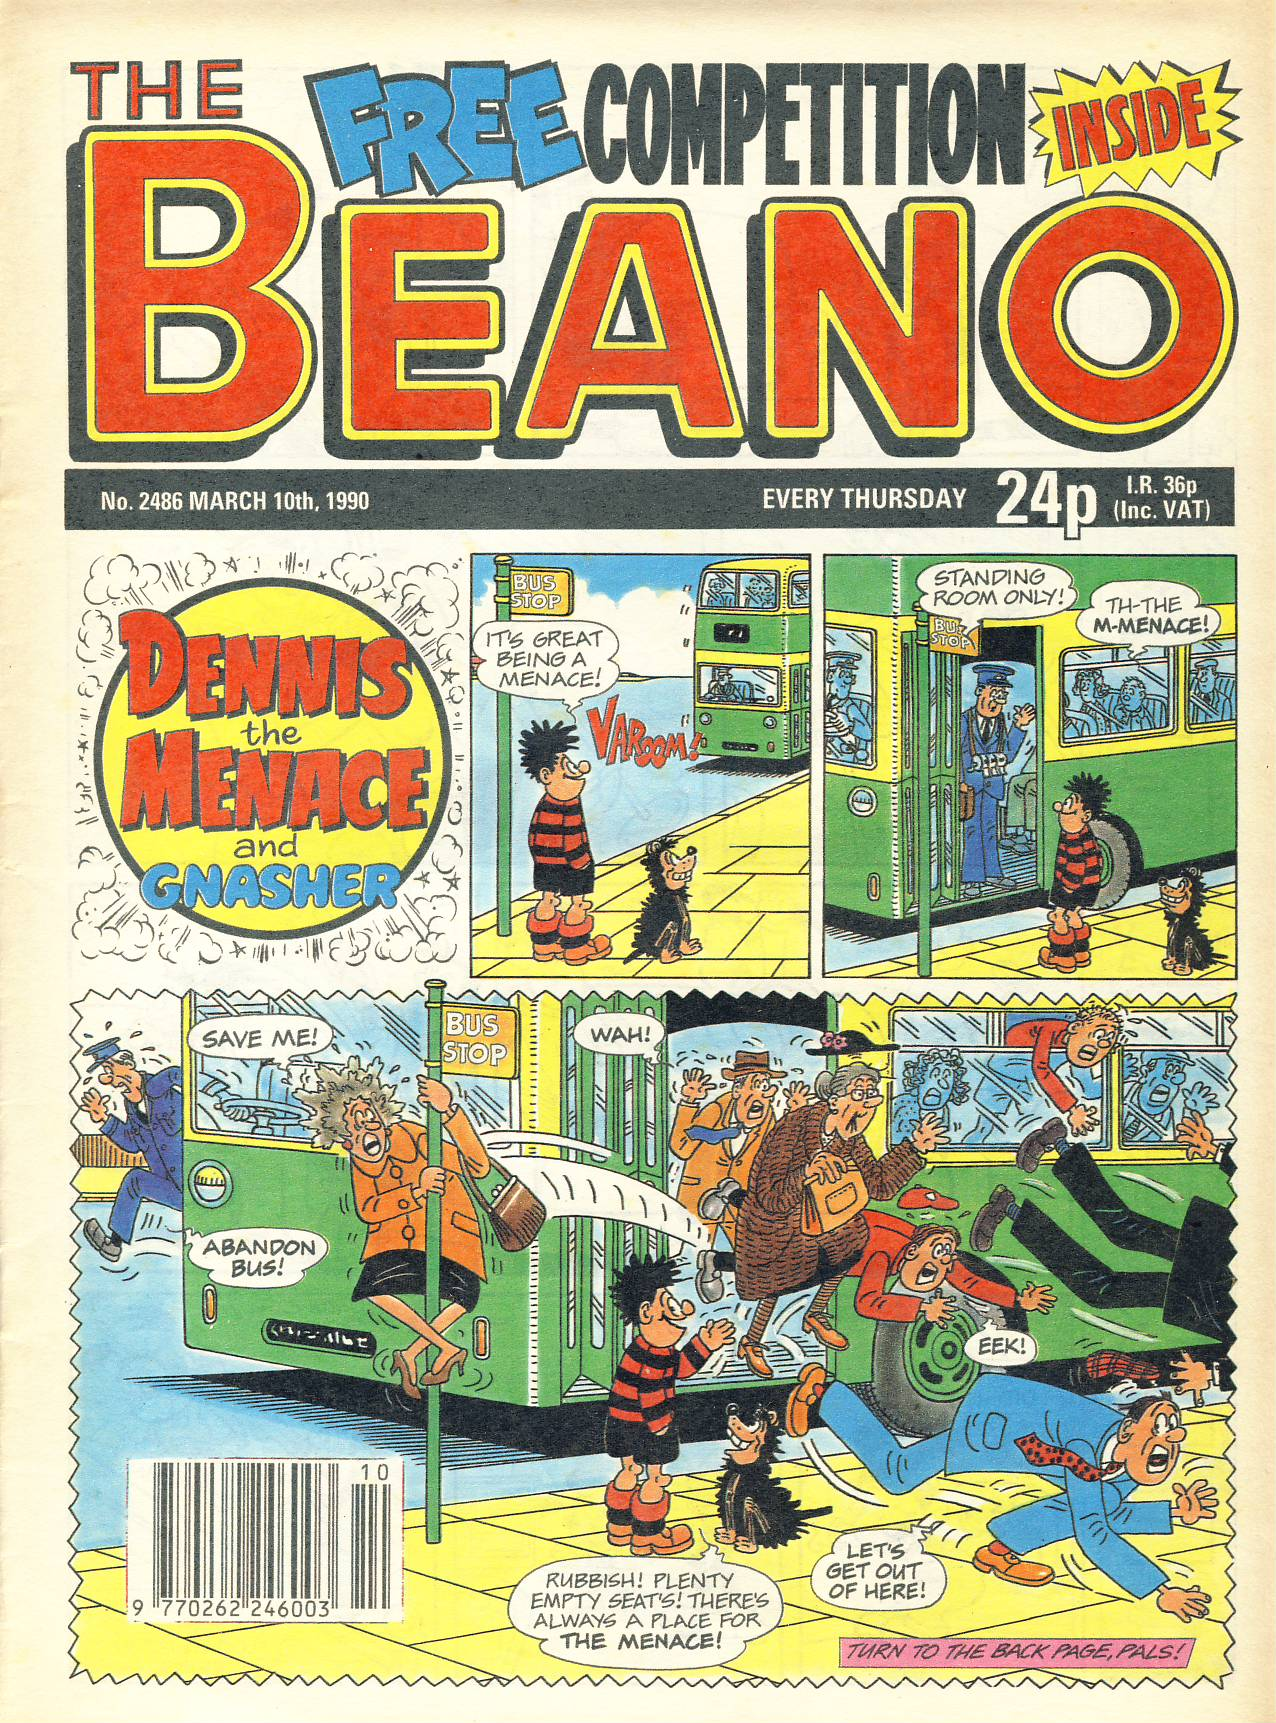 1990 March 10th BEANO vintage comic Good Gift Christmas Present Birthday Anniversary ref298a pre-owned item in good read condition.